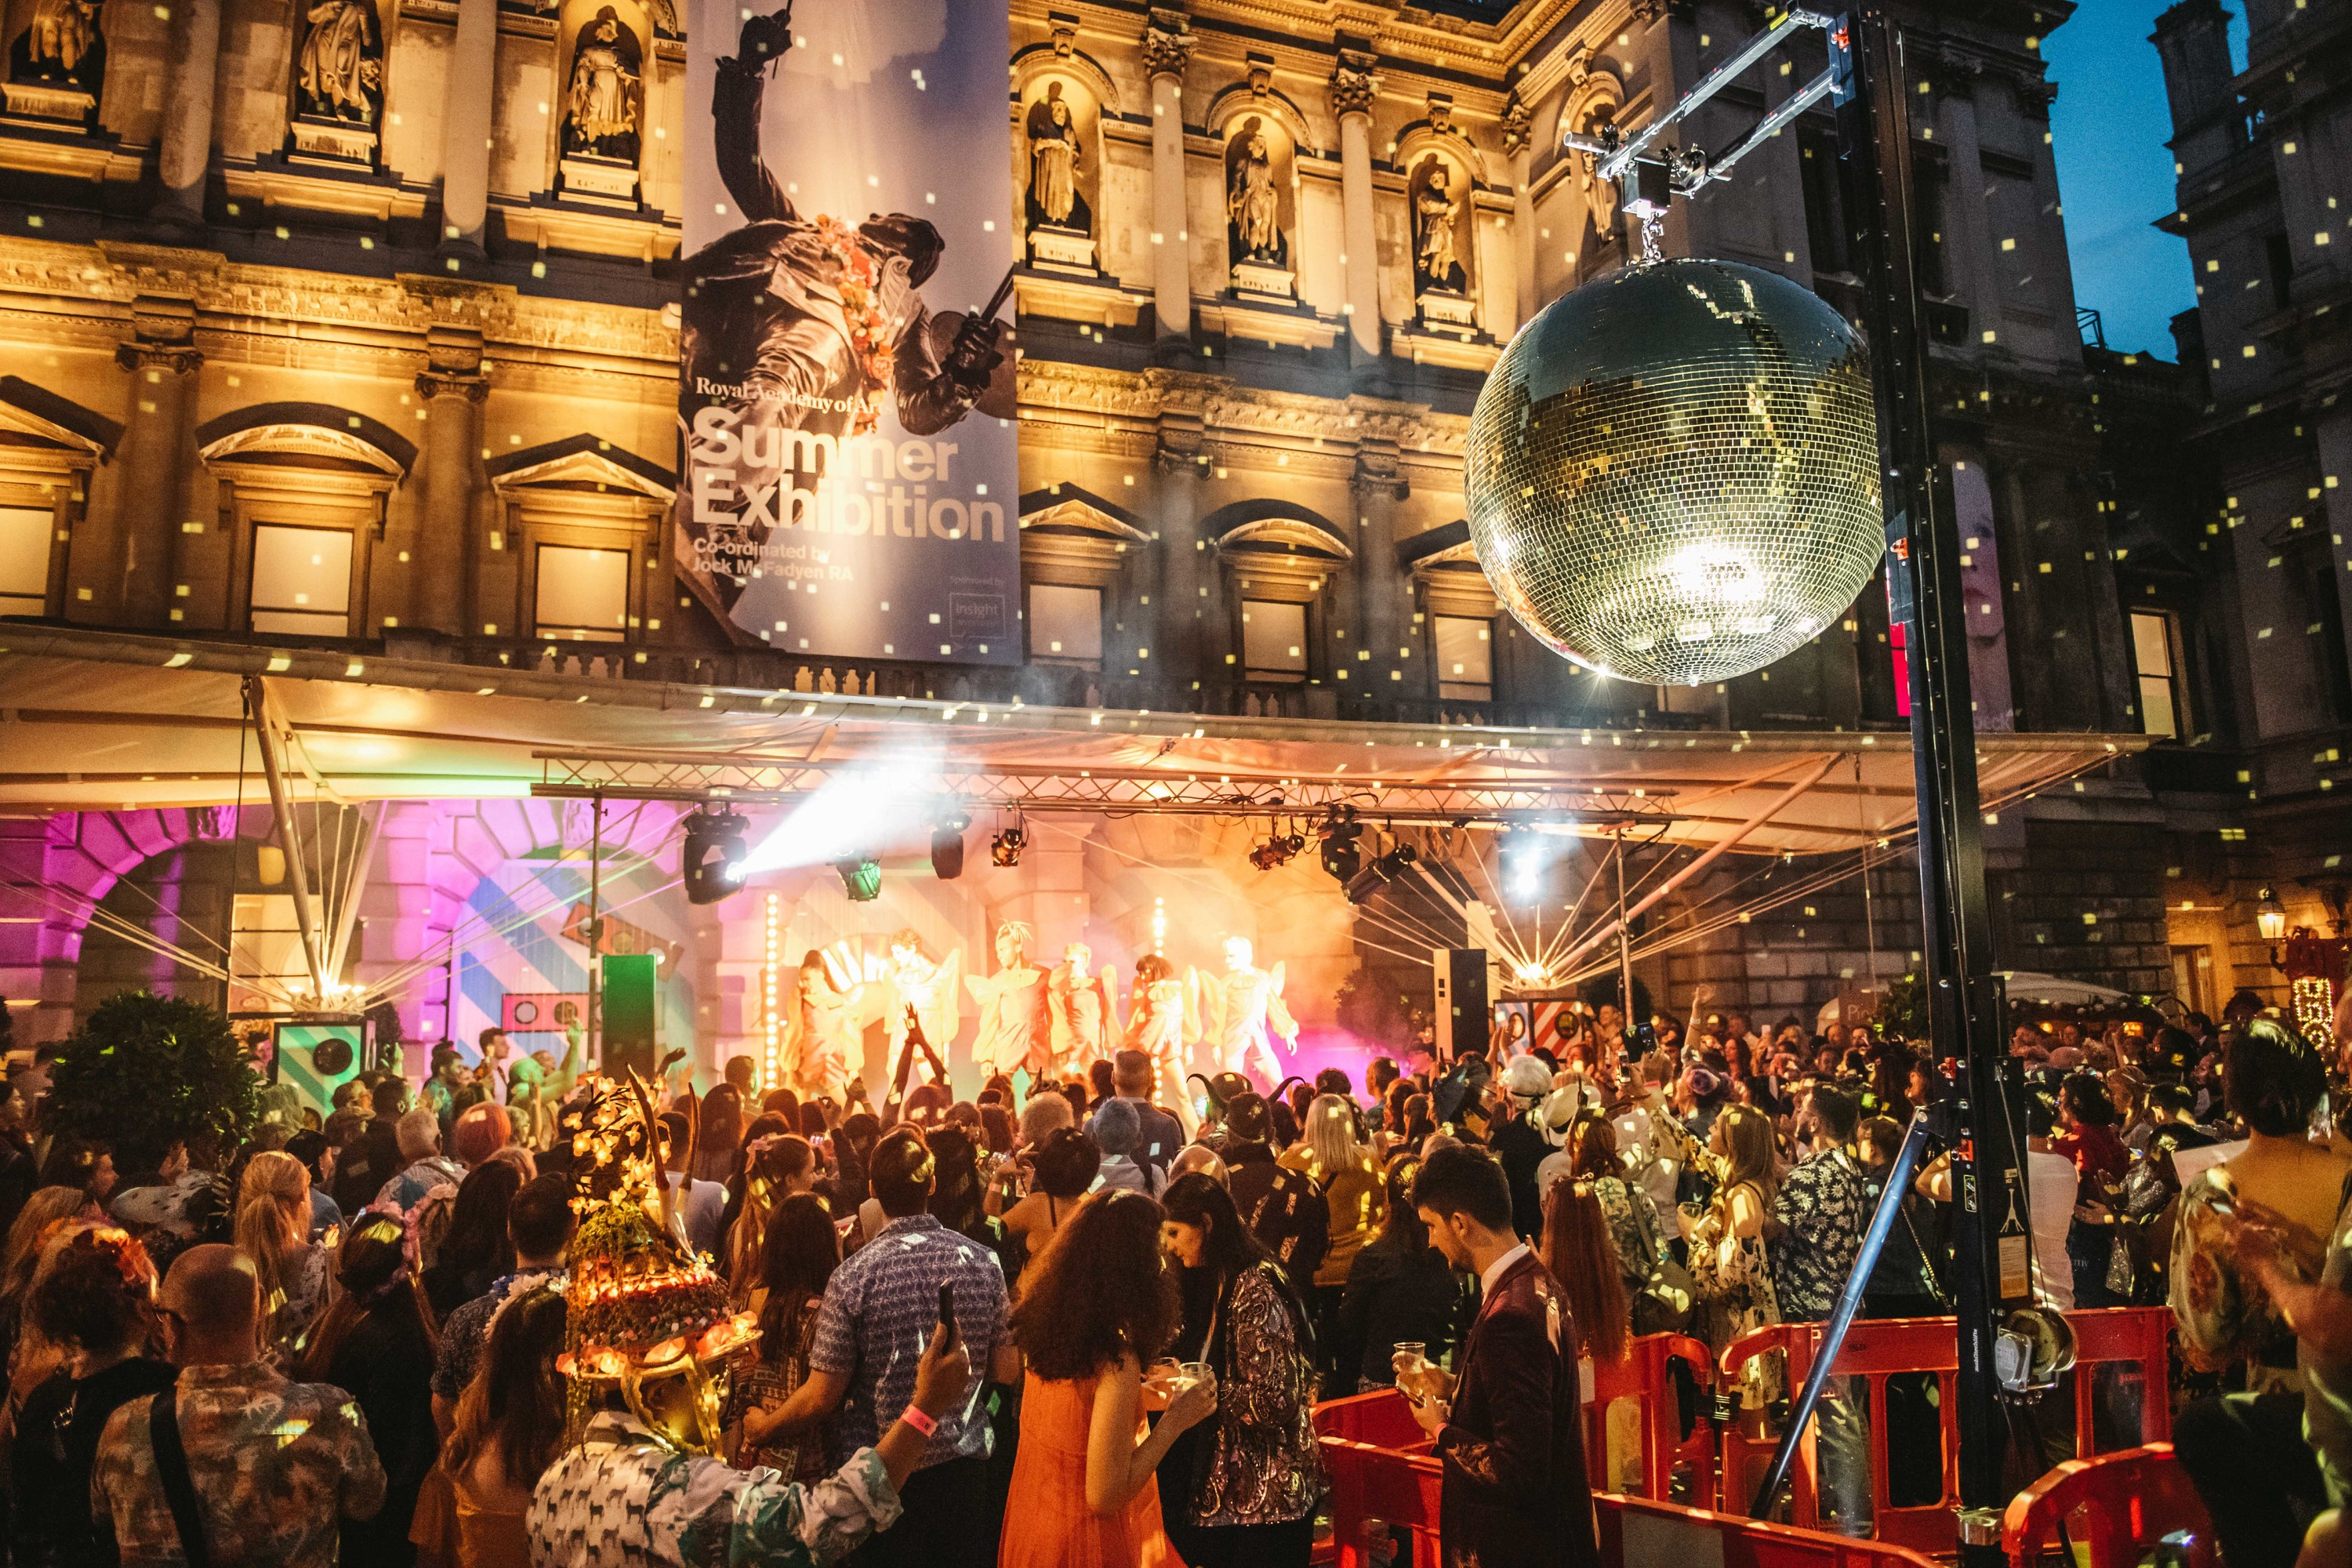 Museum lates: late-night events in London